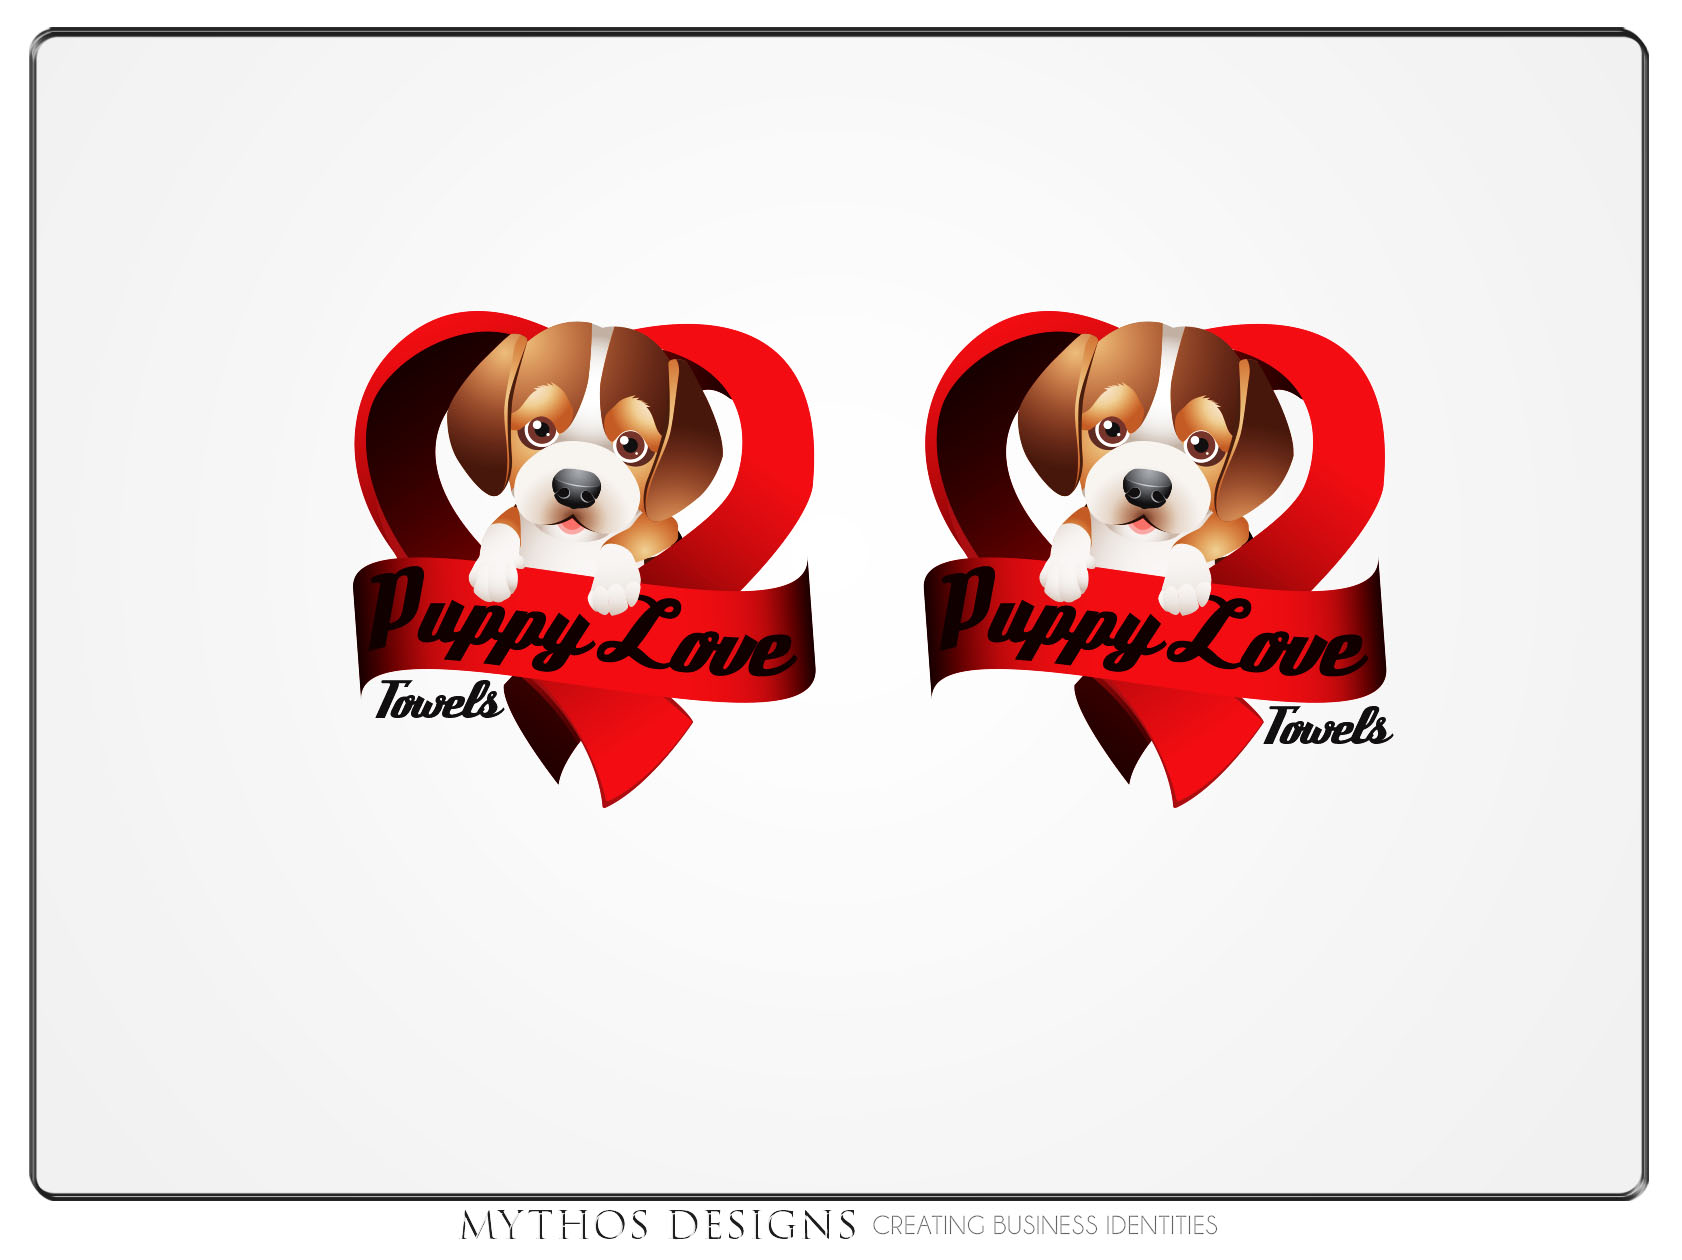 Logo Design by Mythos Designs - Entry No. 78 in the Logo Design Contest Artistic Logo Design for Puppy Love Towels.